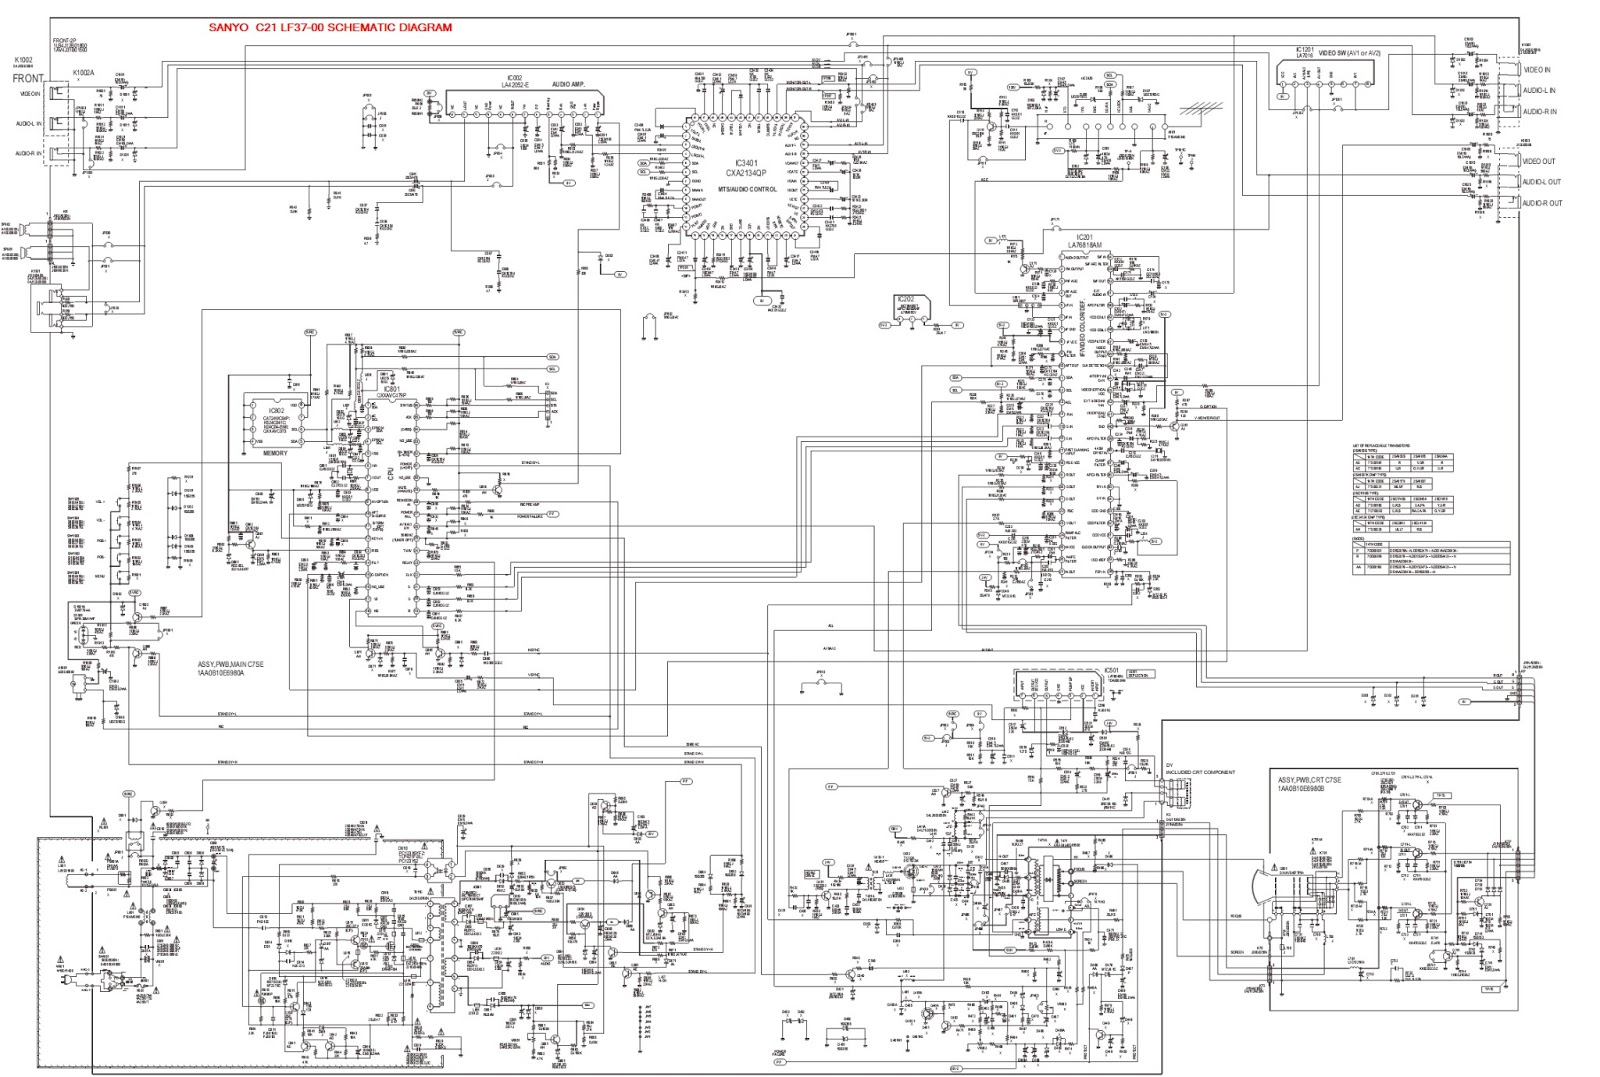 small resolution of sanyo tv diagram wiring diagrams tar sanyo tv kit diagram sanyo tv diagram